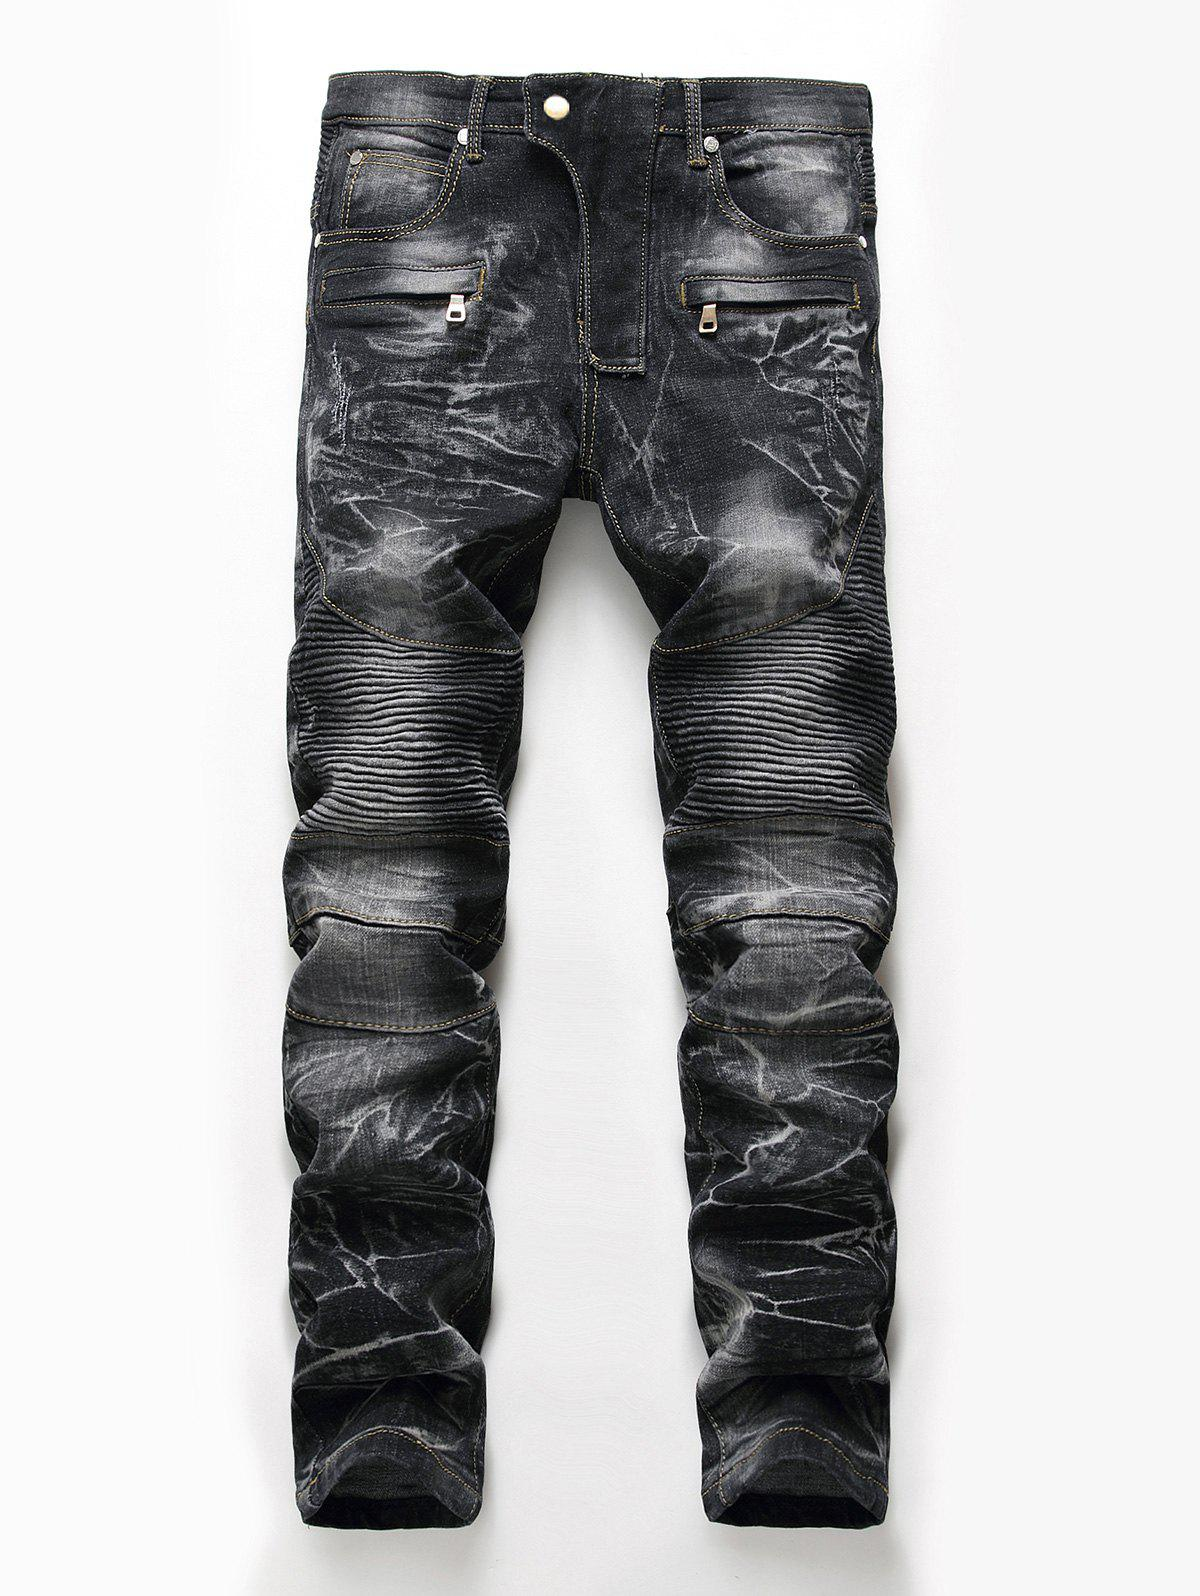 Straight Leg Snow Wash Biker JeansMEN<br><br>Size: 34; Color: BLACK; Material: Cotton,Polyester,Spandex; Pant Length: Long Pants; Wash: Snow Wash; Fit Type: Regular; Waist Type: Mid; Closure Type: Zipper Fly; Weight: 0.8100kg; Pant Style: Straight; Package Contents: 1 x Jeans; With Belt: No;